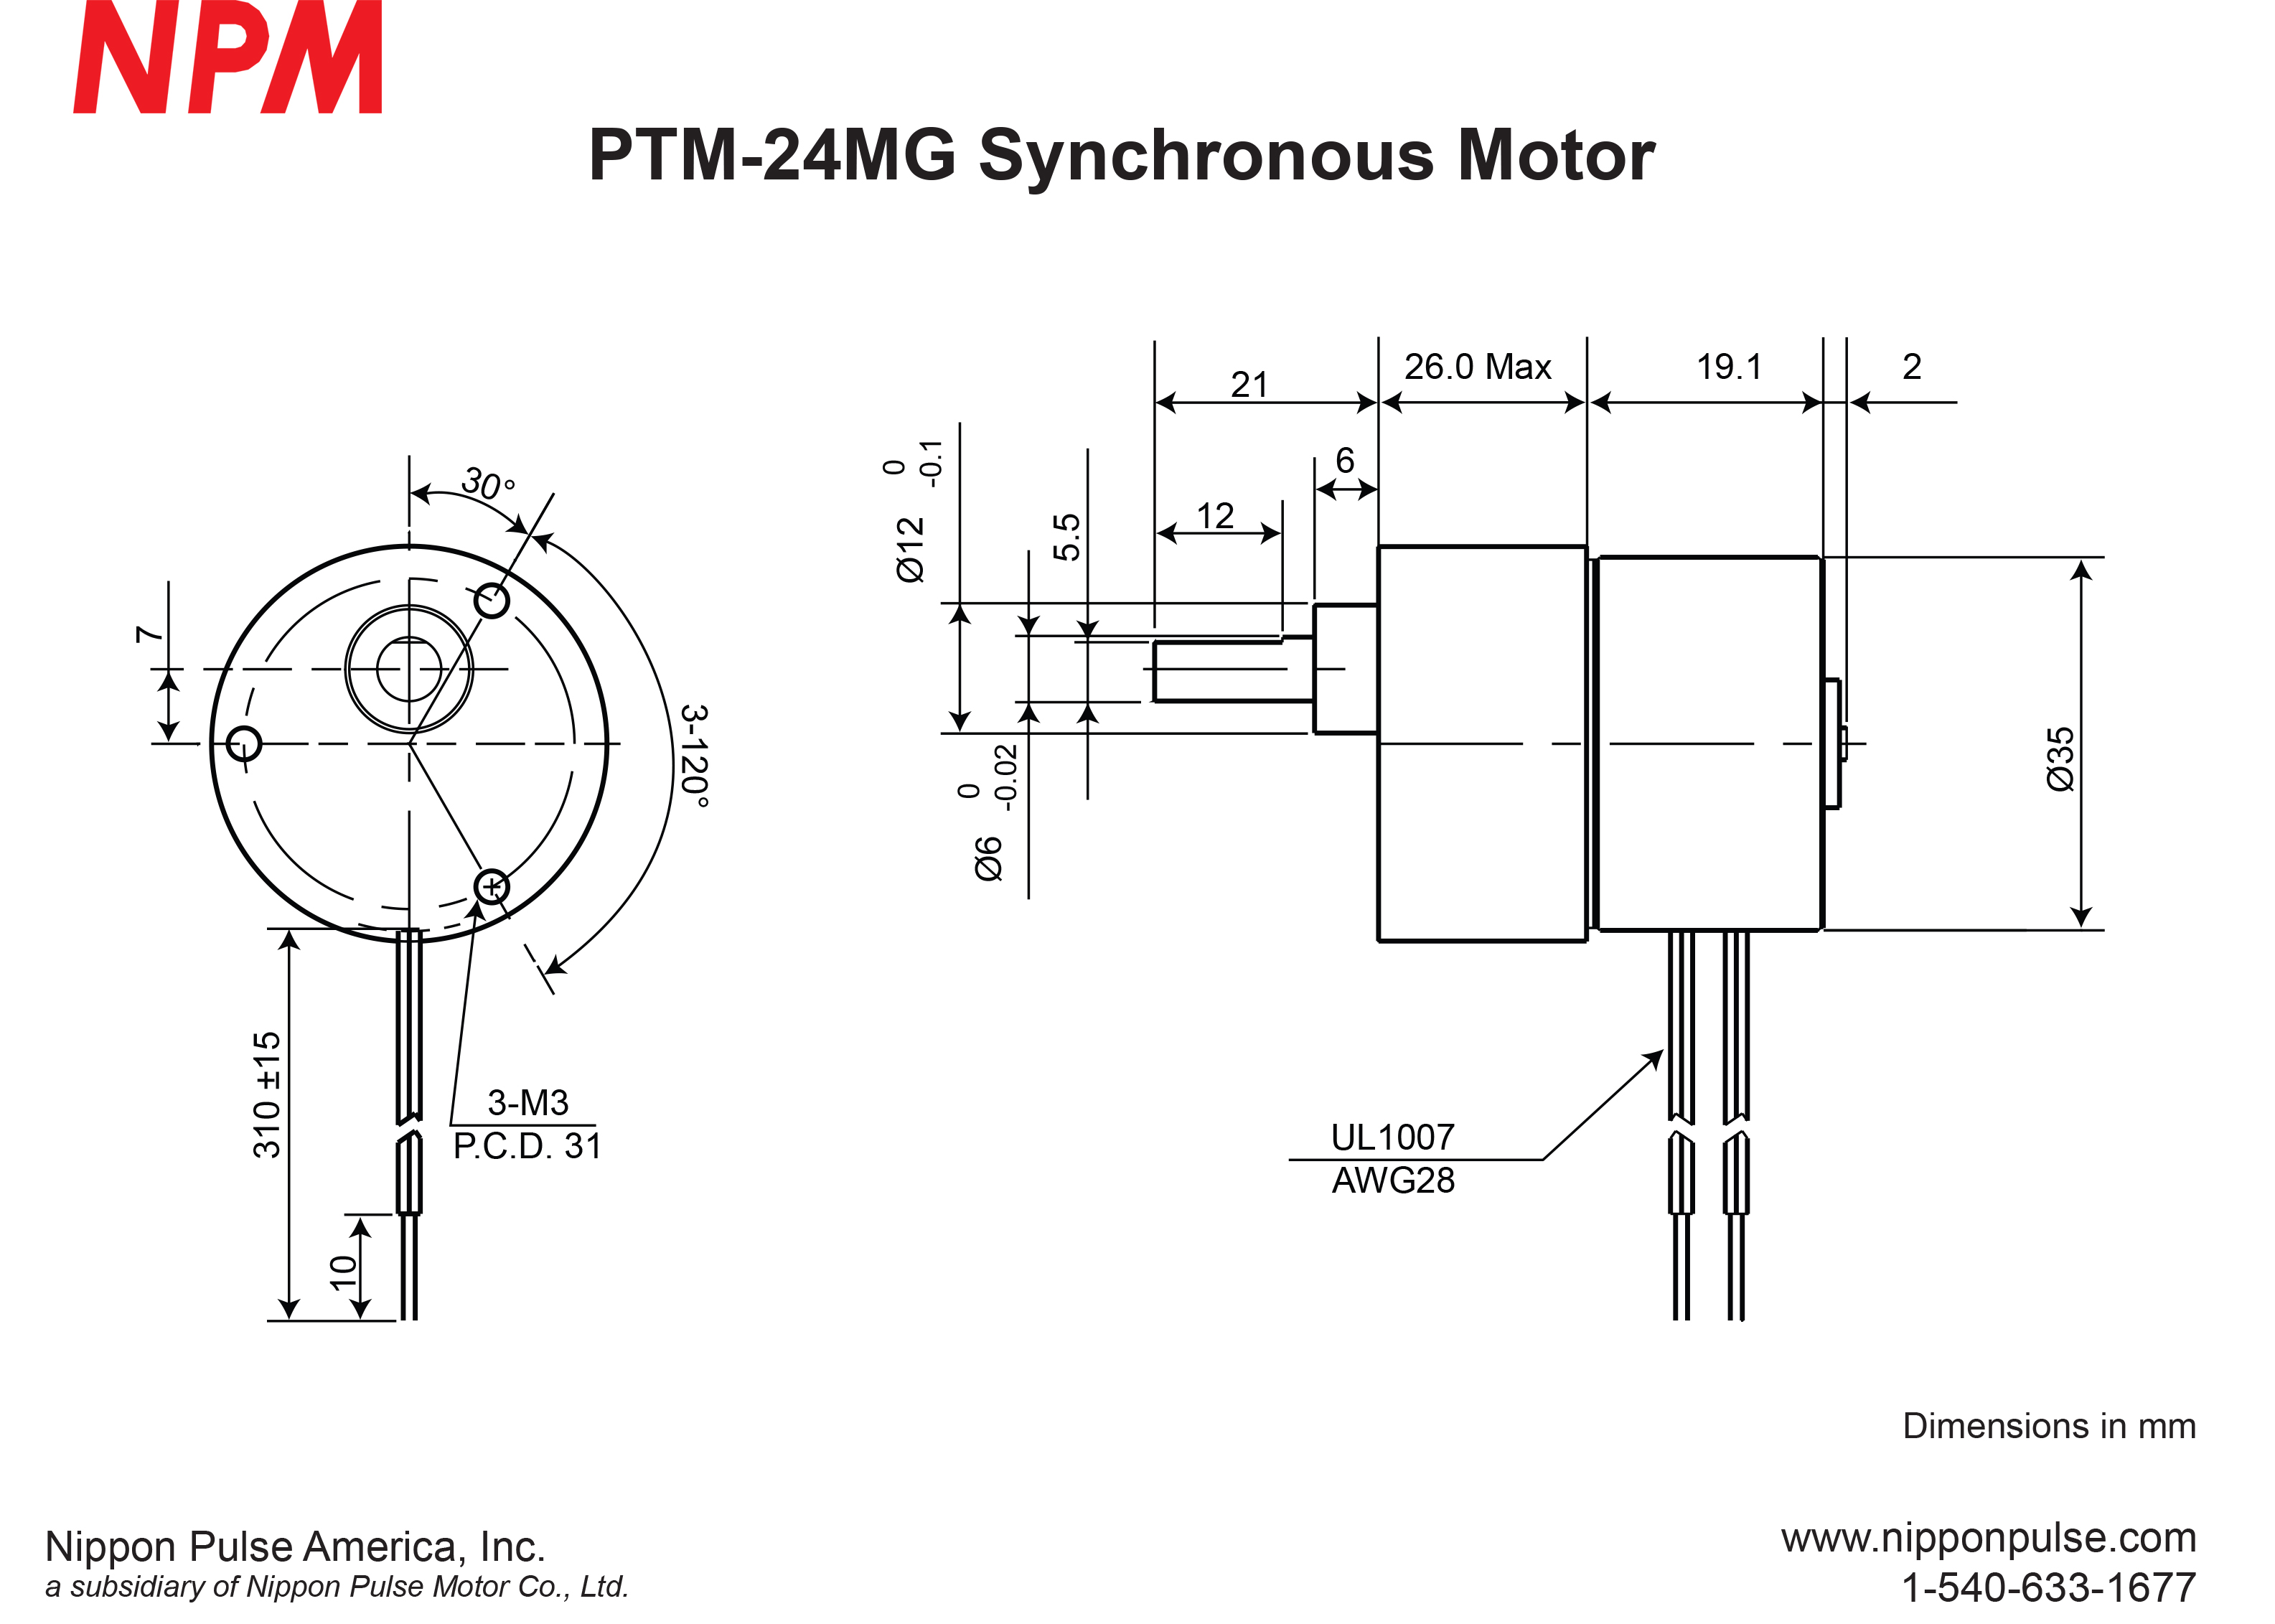 PTM-24MG(1/100) system drawing